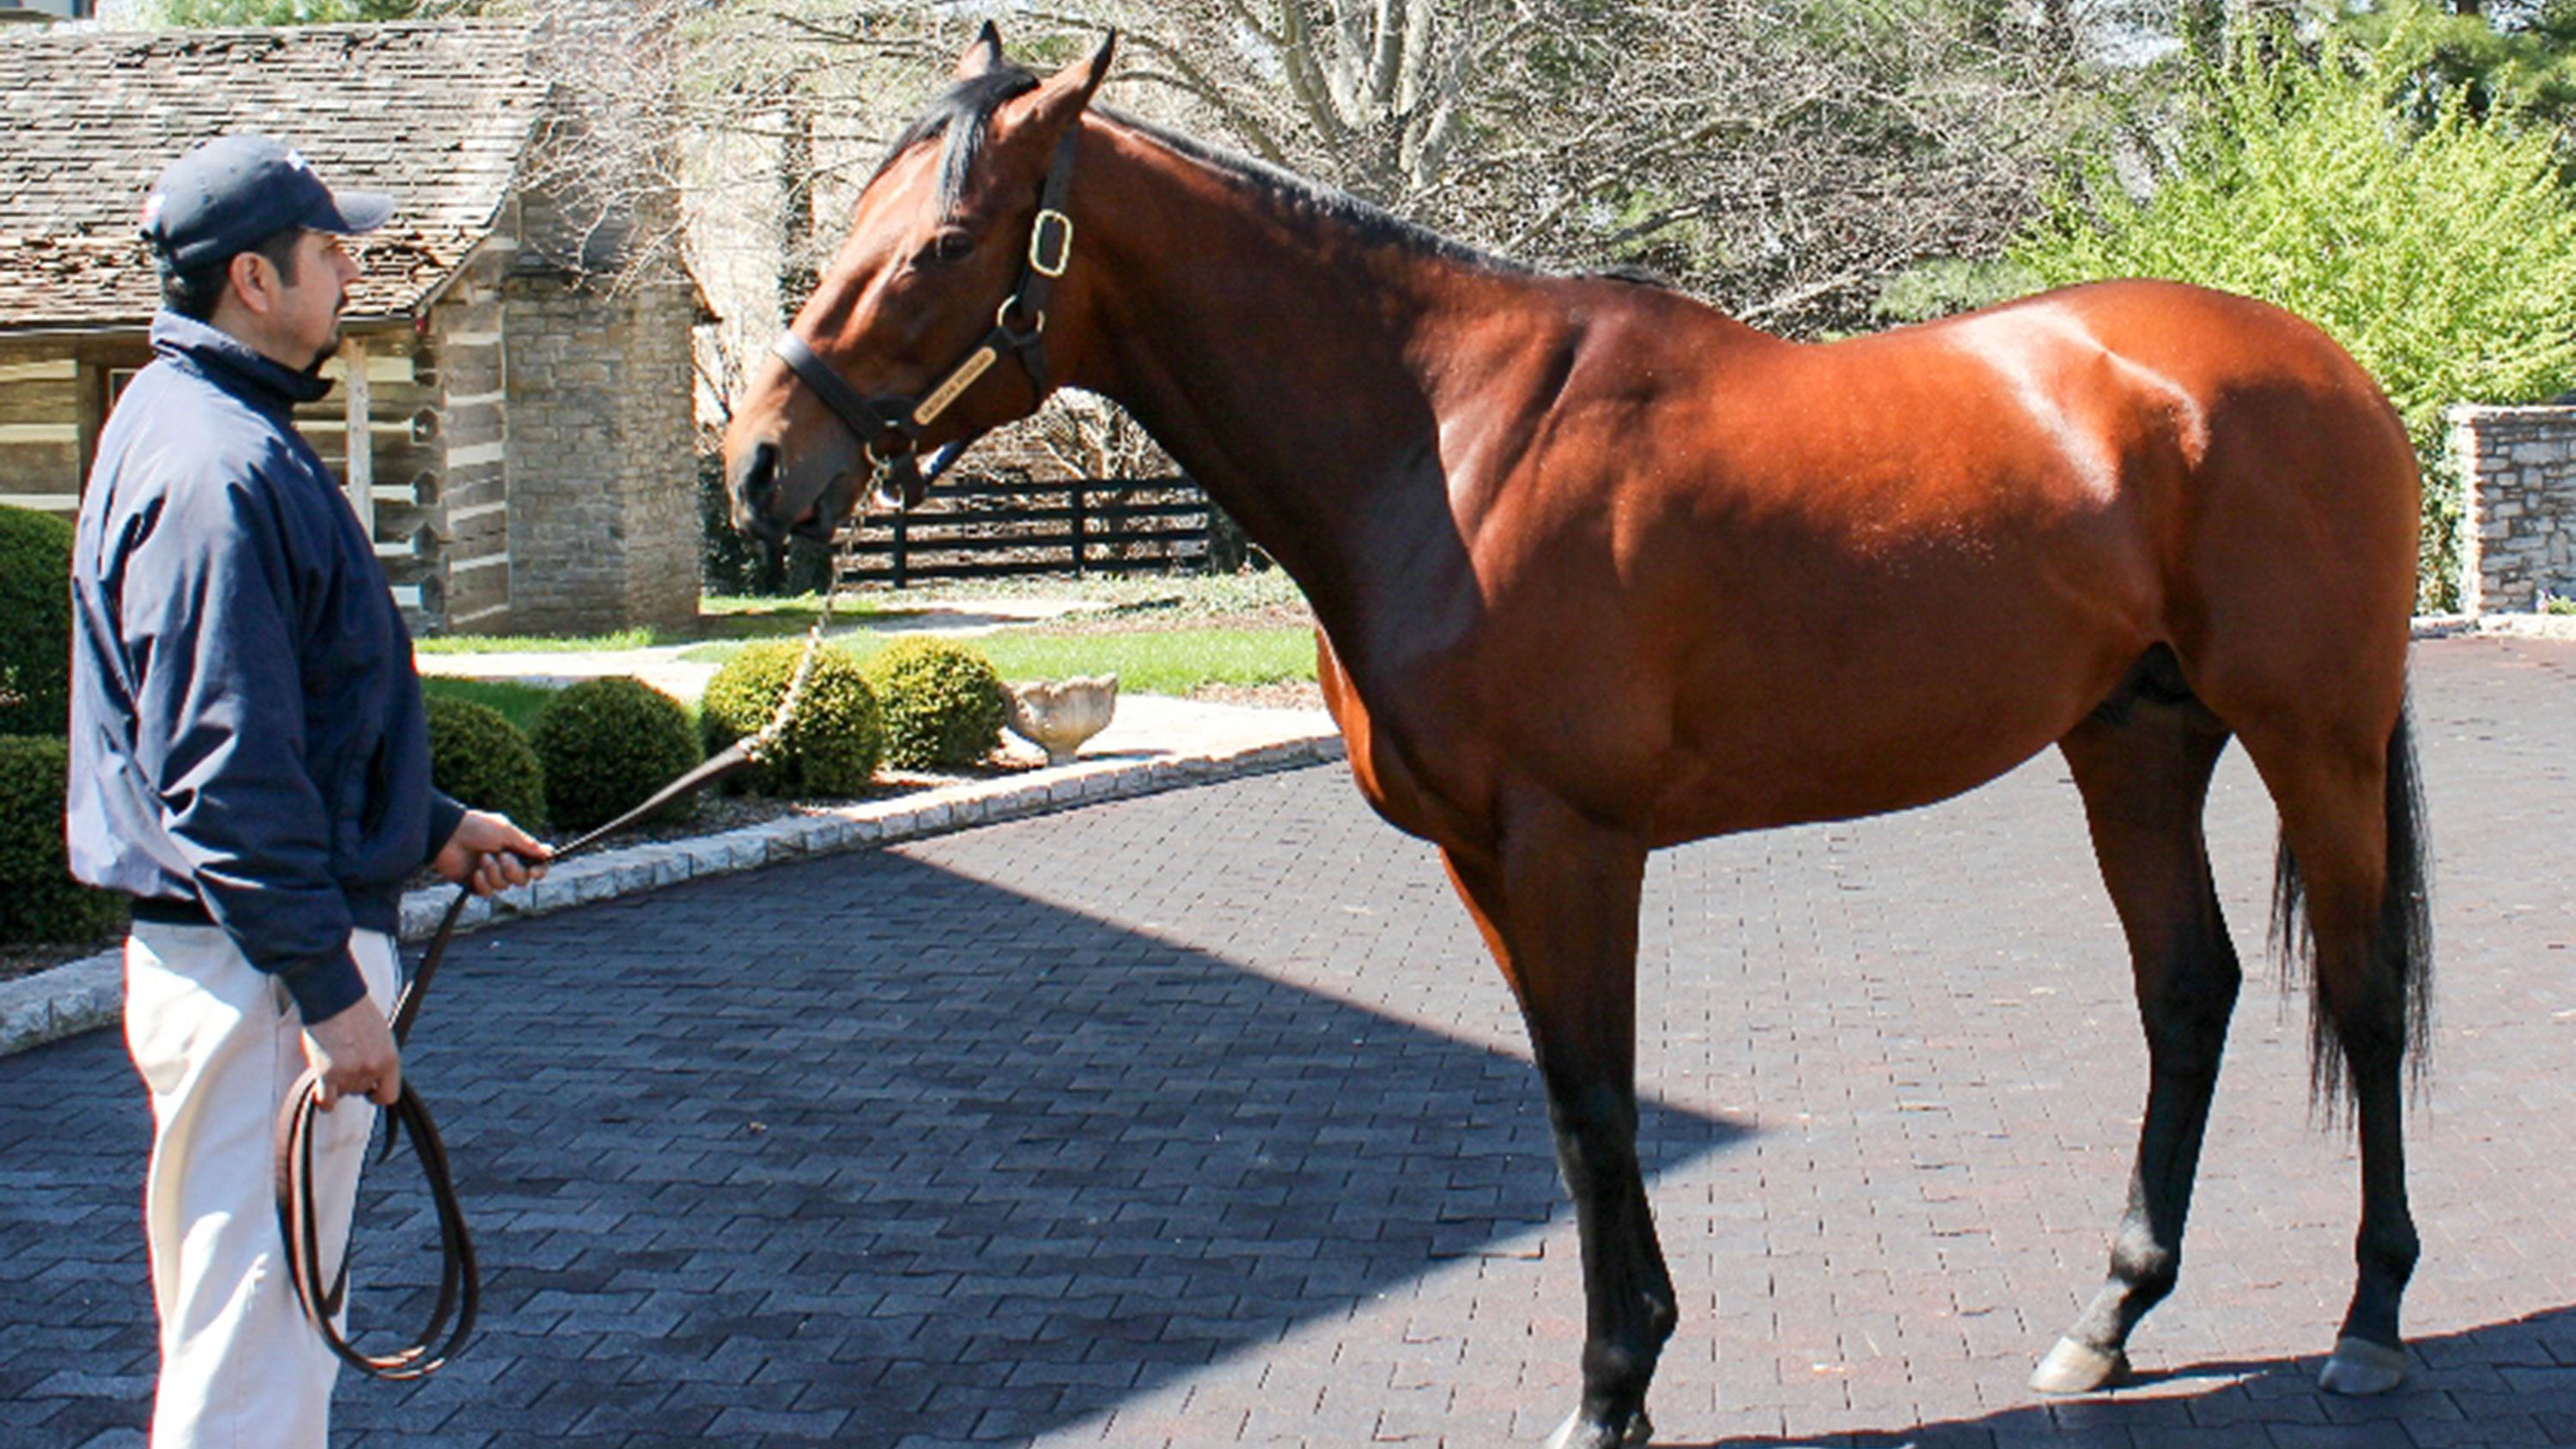 American Pharoah filly sells for astonishing price of nearly $12 million